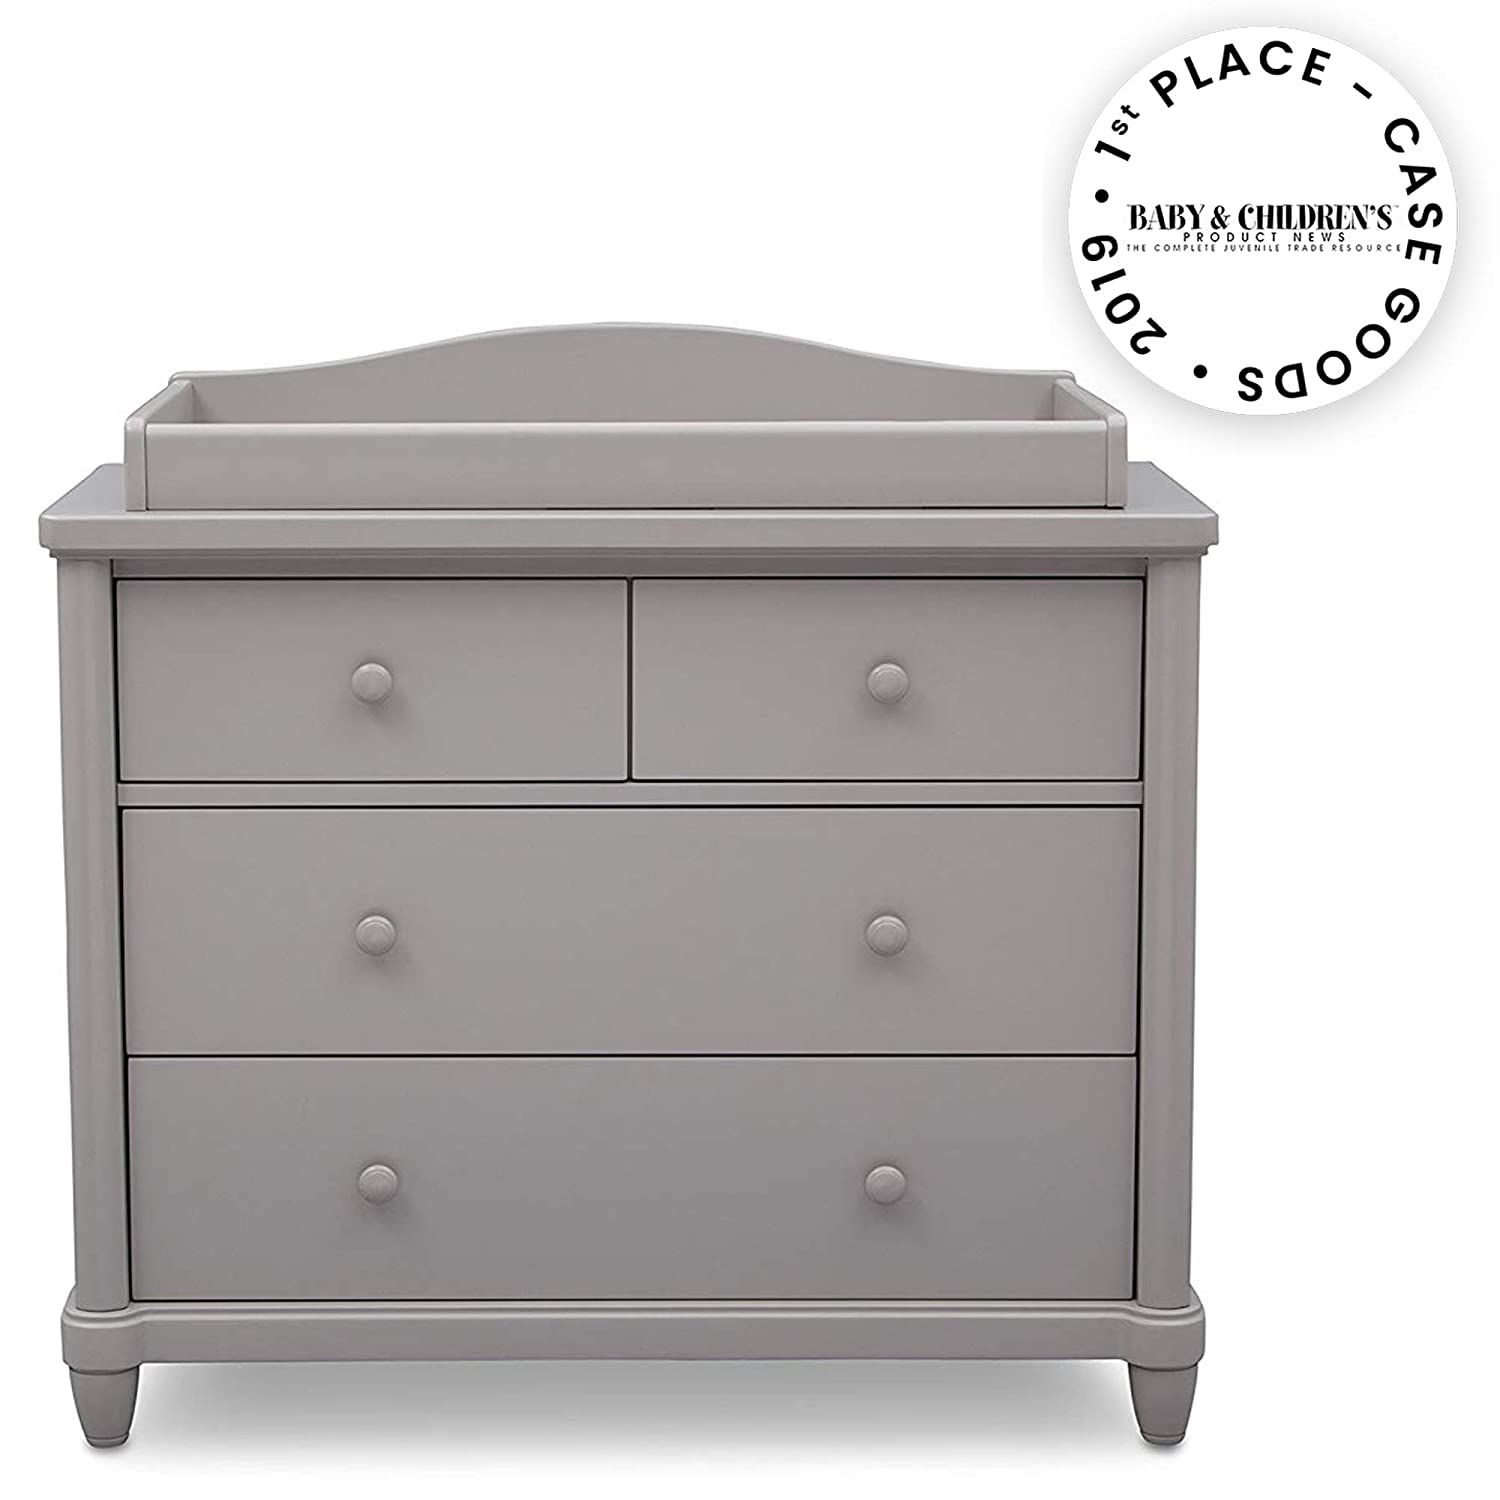 Simmons Kids Belmont 4 Drawer Dresser with Changing Top, Grey